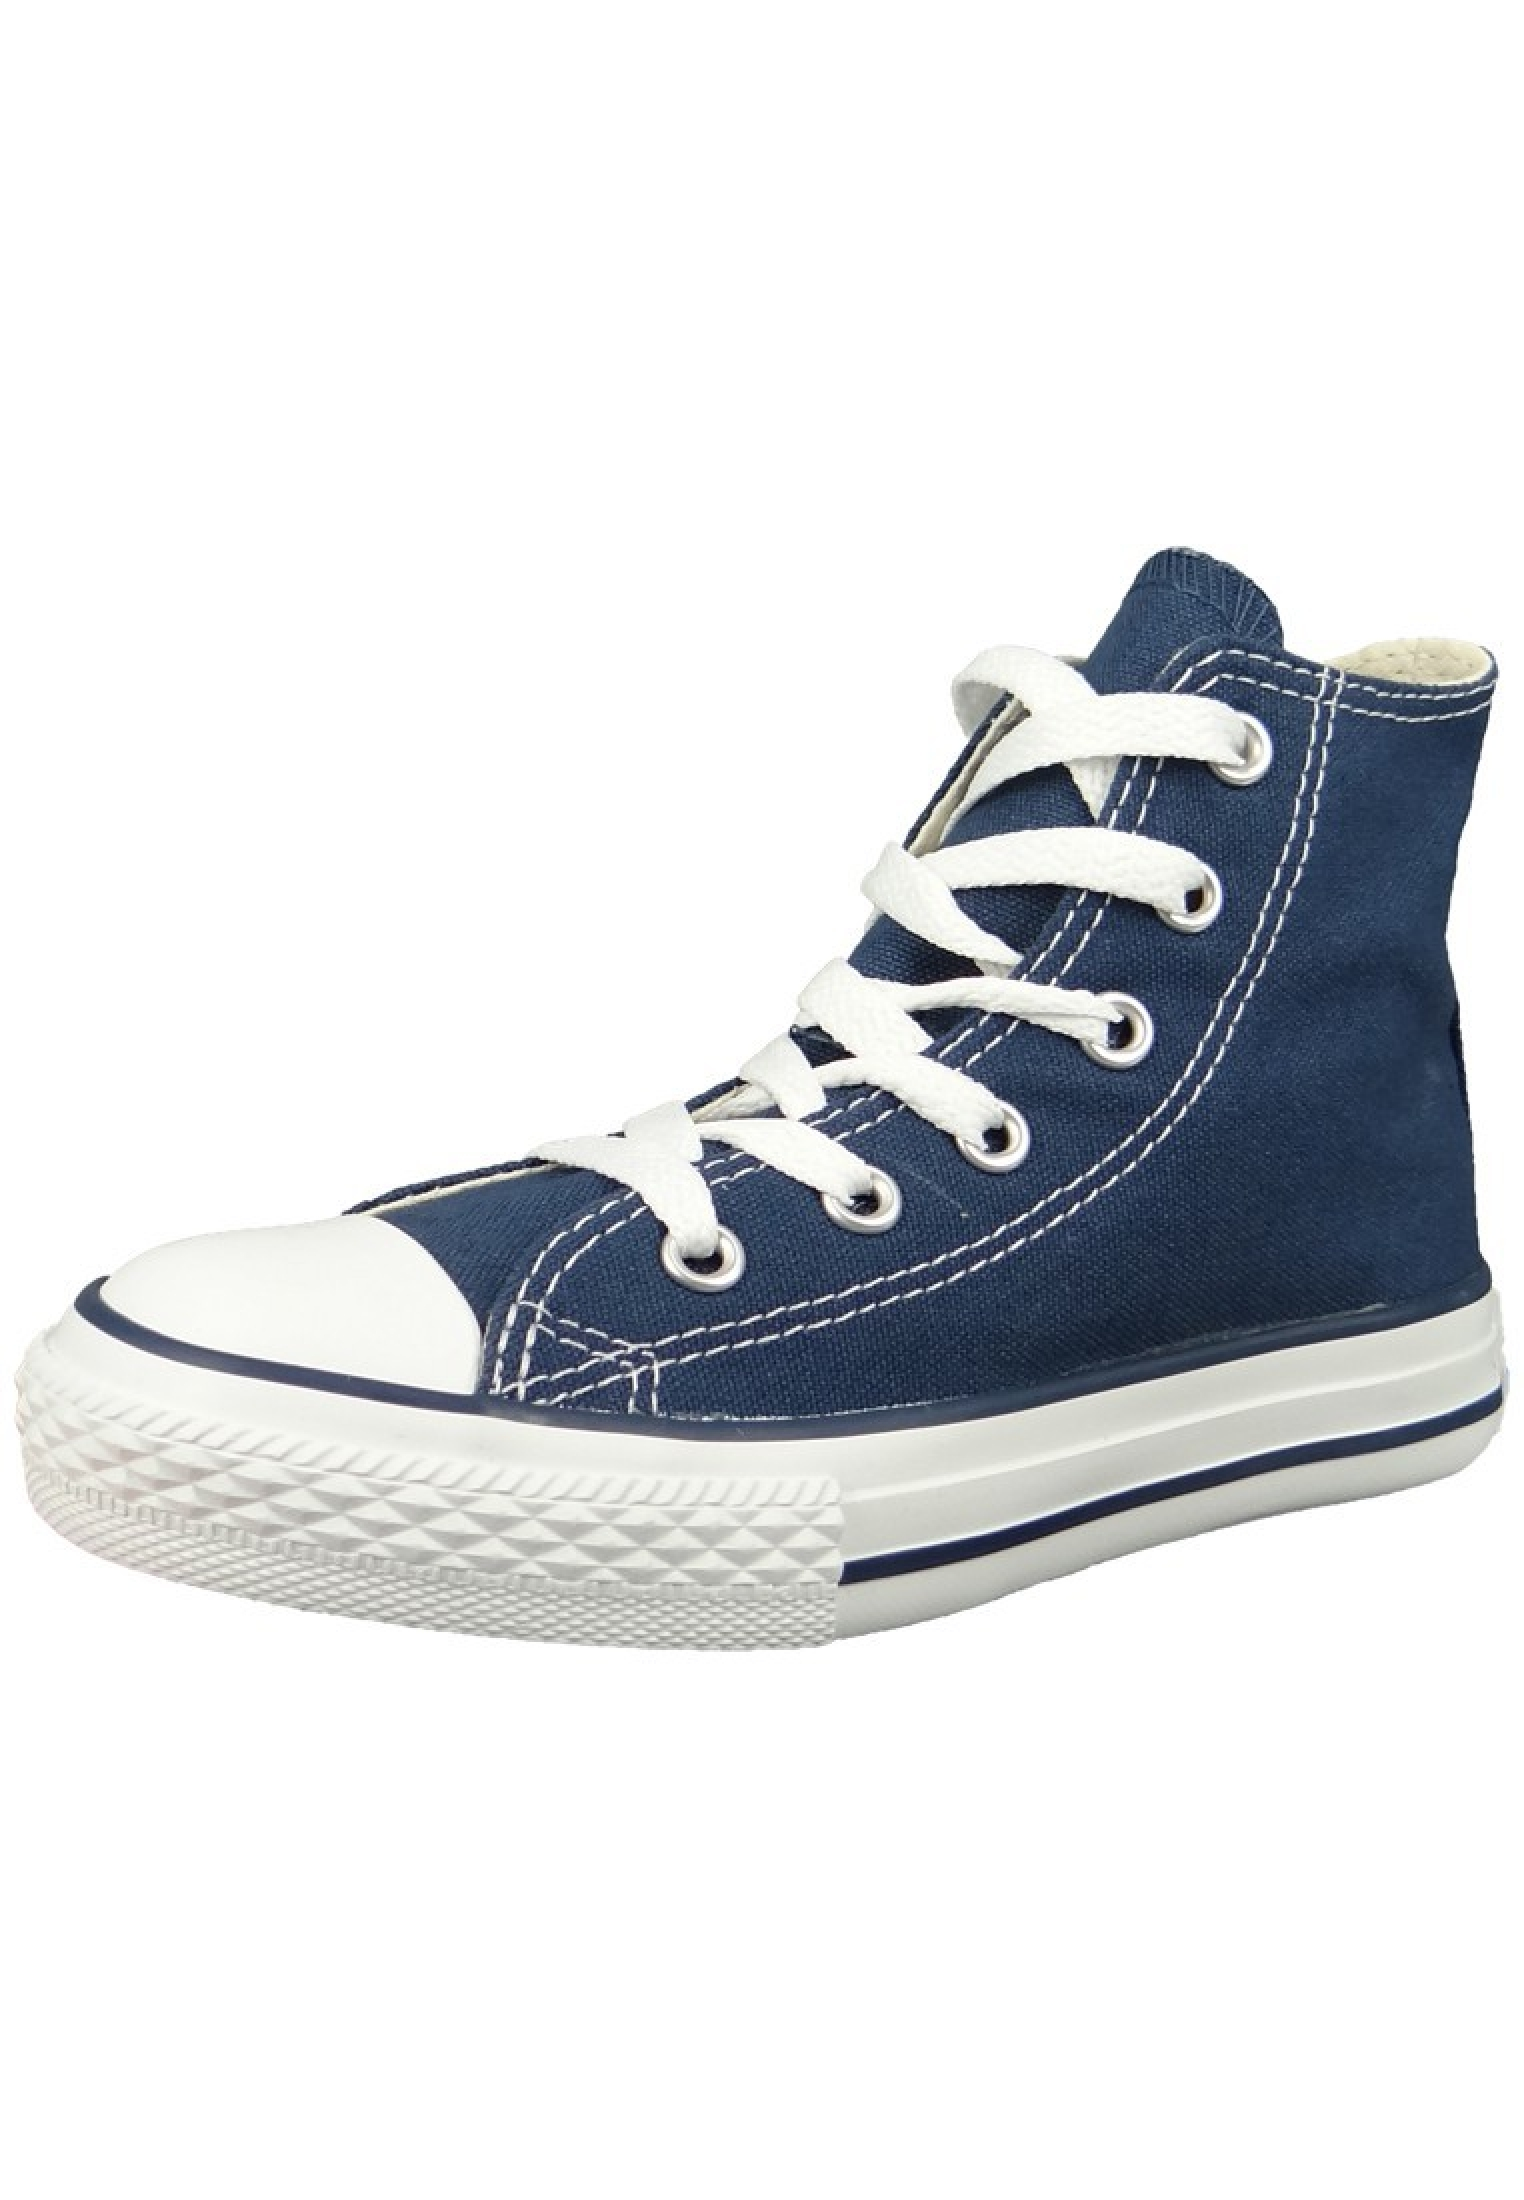 Converse Chucks Kinder 3J233C AS HI CAN Navy Blau